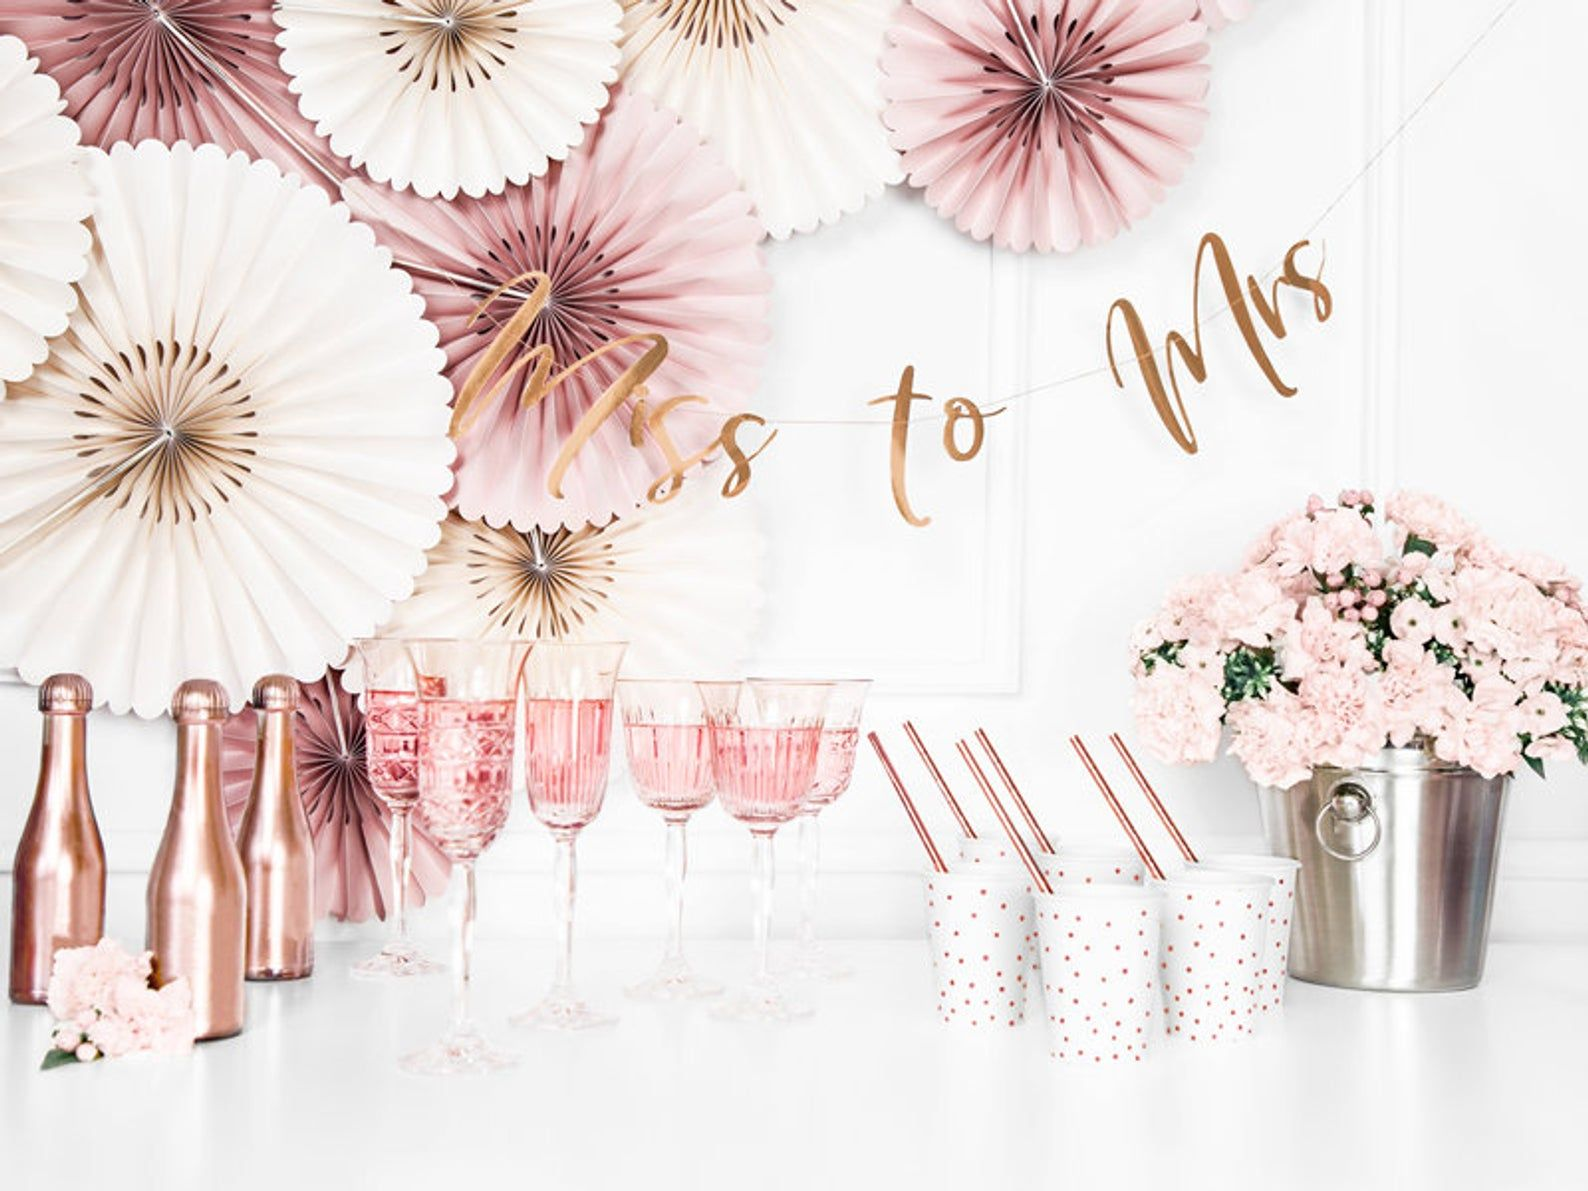 From Miss To Mrs Bunting Rose Gold Hen Party Bunting Hen Party